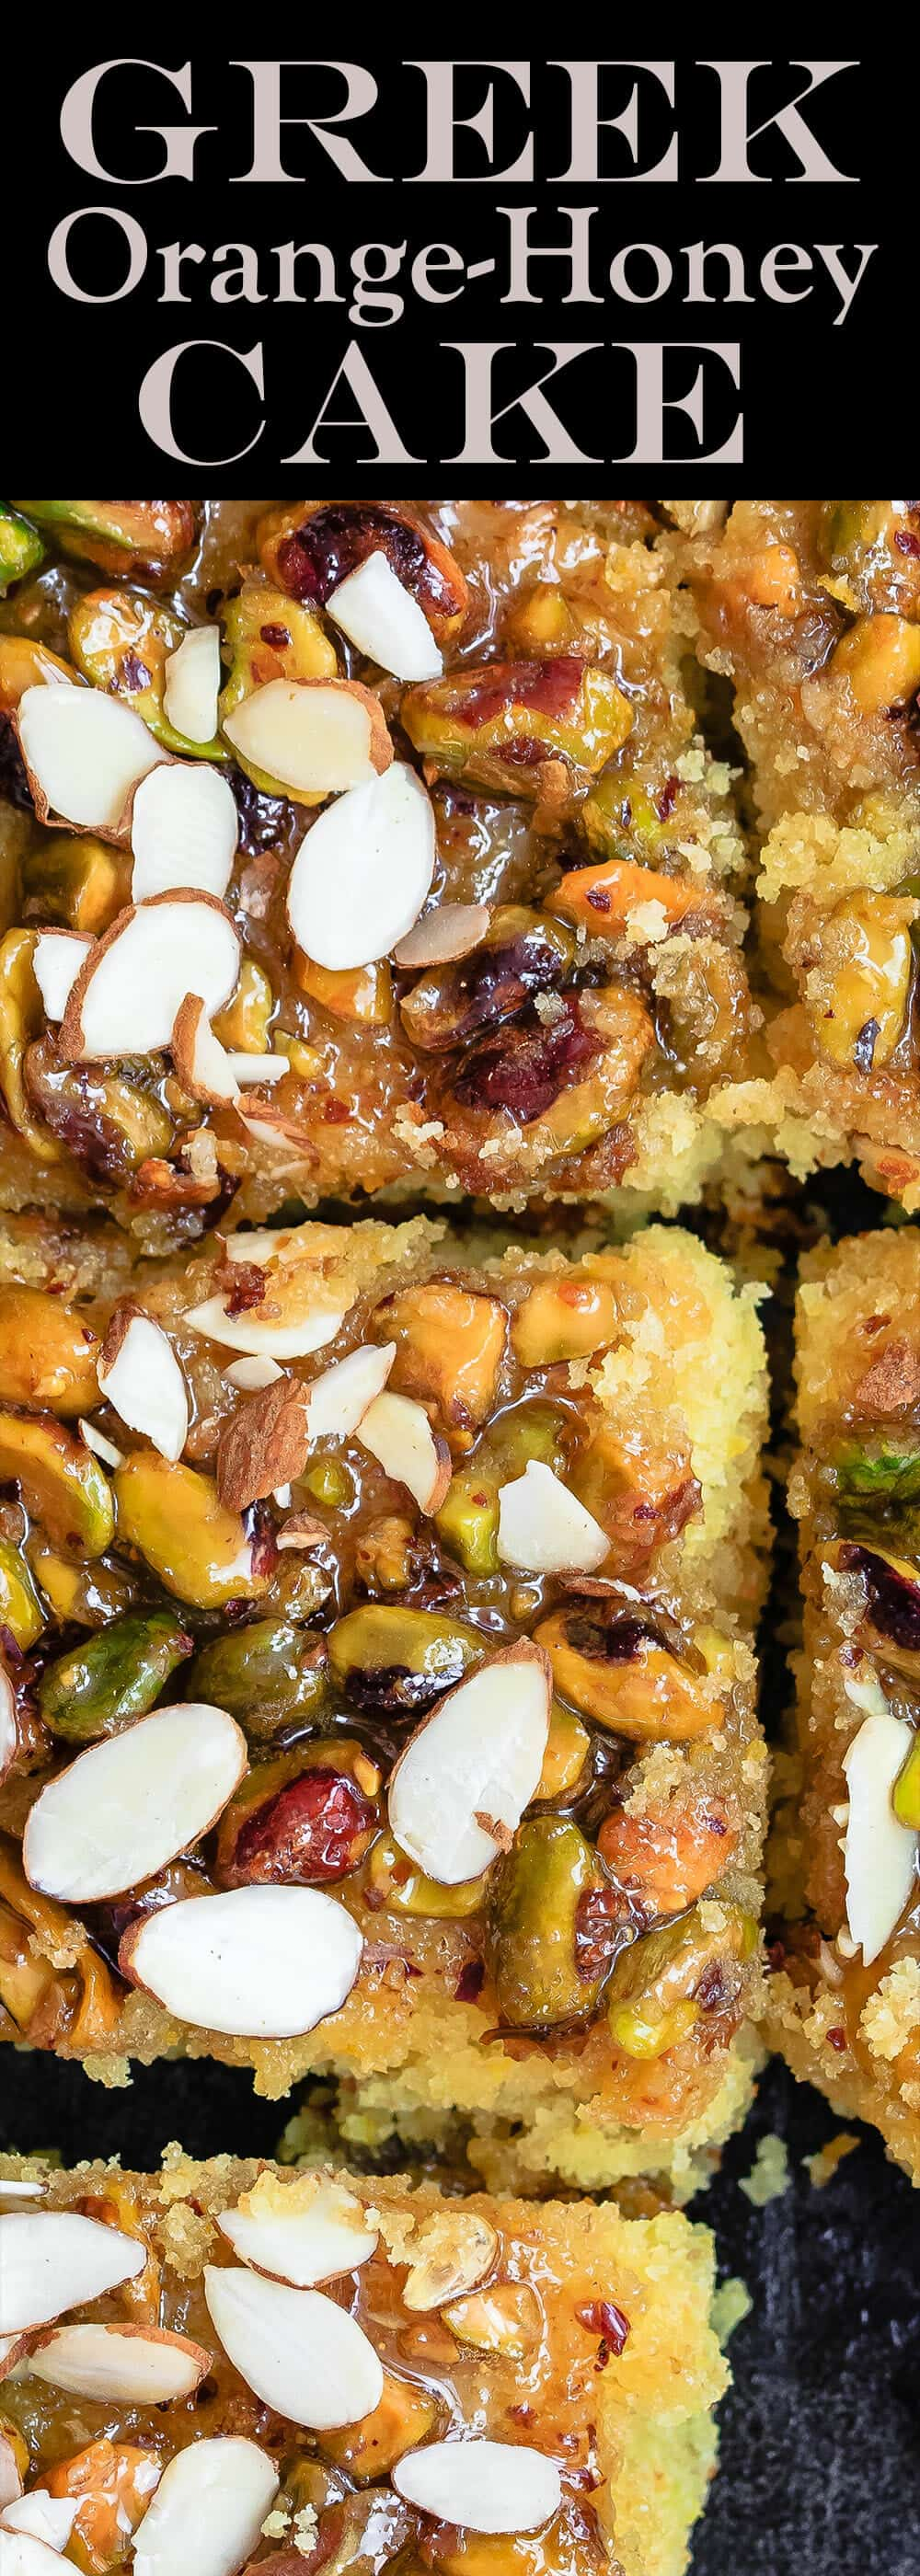 Greek Orange Honey Cake | The Mediterranean Dish. This super simple Greek cake is made with olive oil and Greek yogurt, and perfectly flavored with lots of citrus. Topped with toasted pistachios and a luscious honey syrup. A foolproof honey cake that can feed a crowd! See it on TheMediterraneanDish.com #cake #oliveoilcake #mediterraneandiet #easterdinnerideas #easterdinner #dessertrecipes #chirstmasrecipes #christmasdinnerideas #easterrecipes